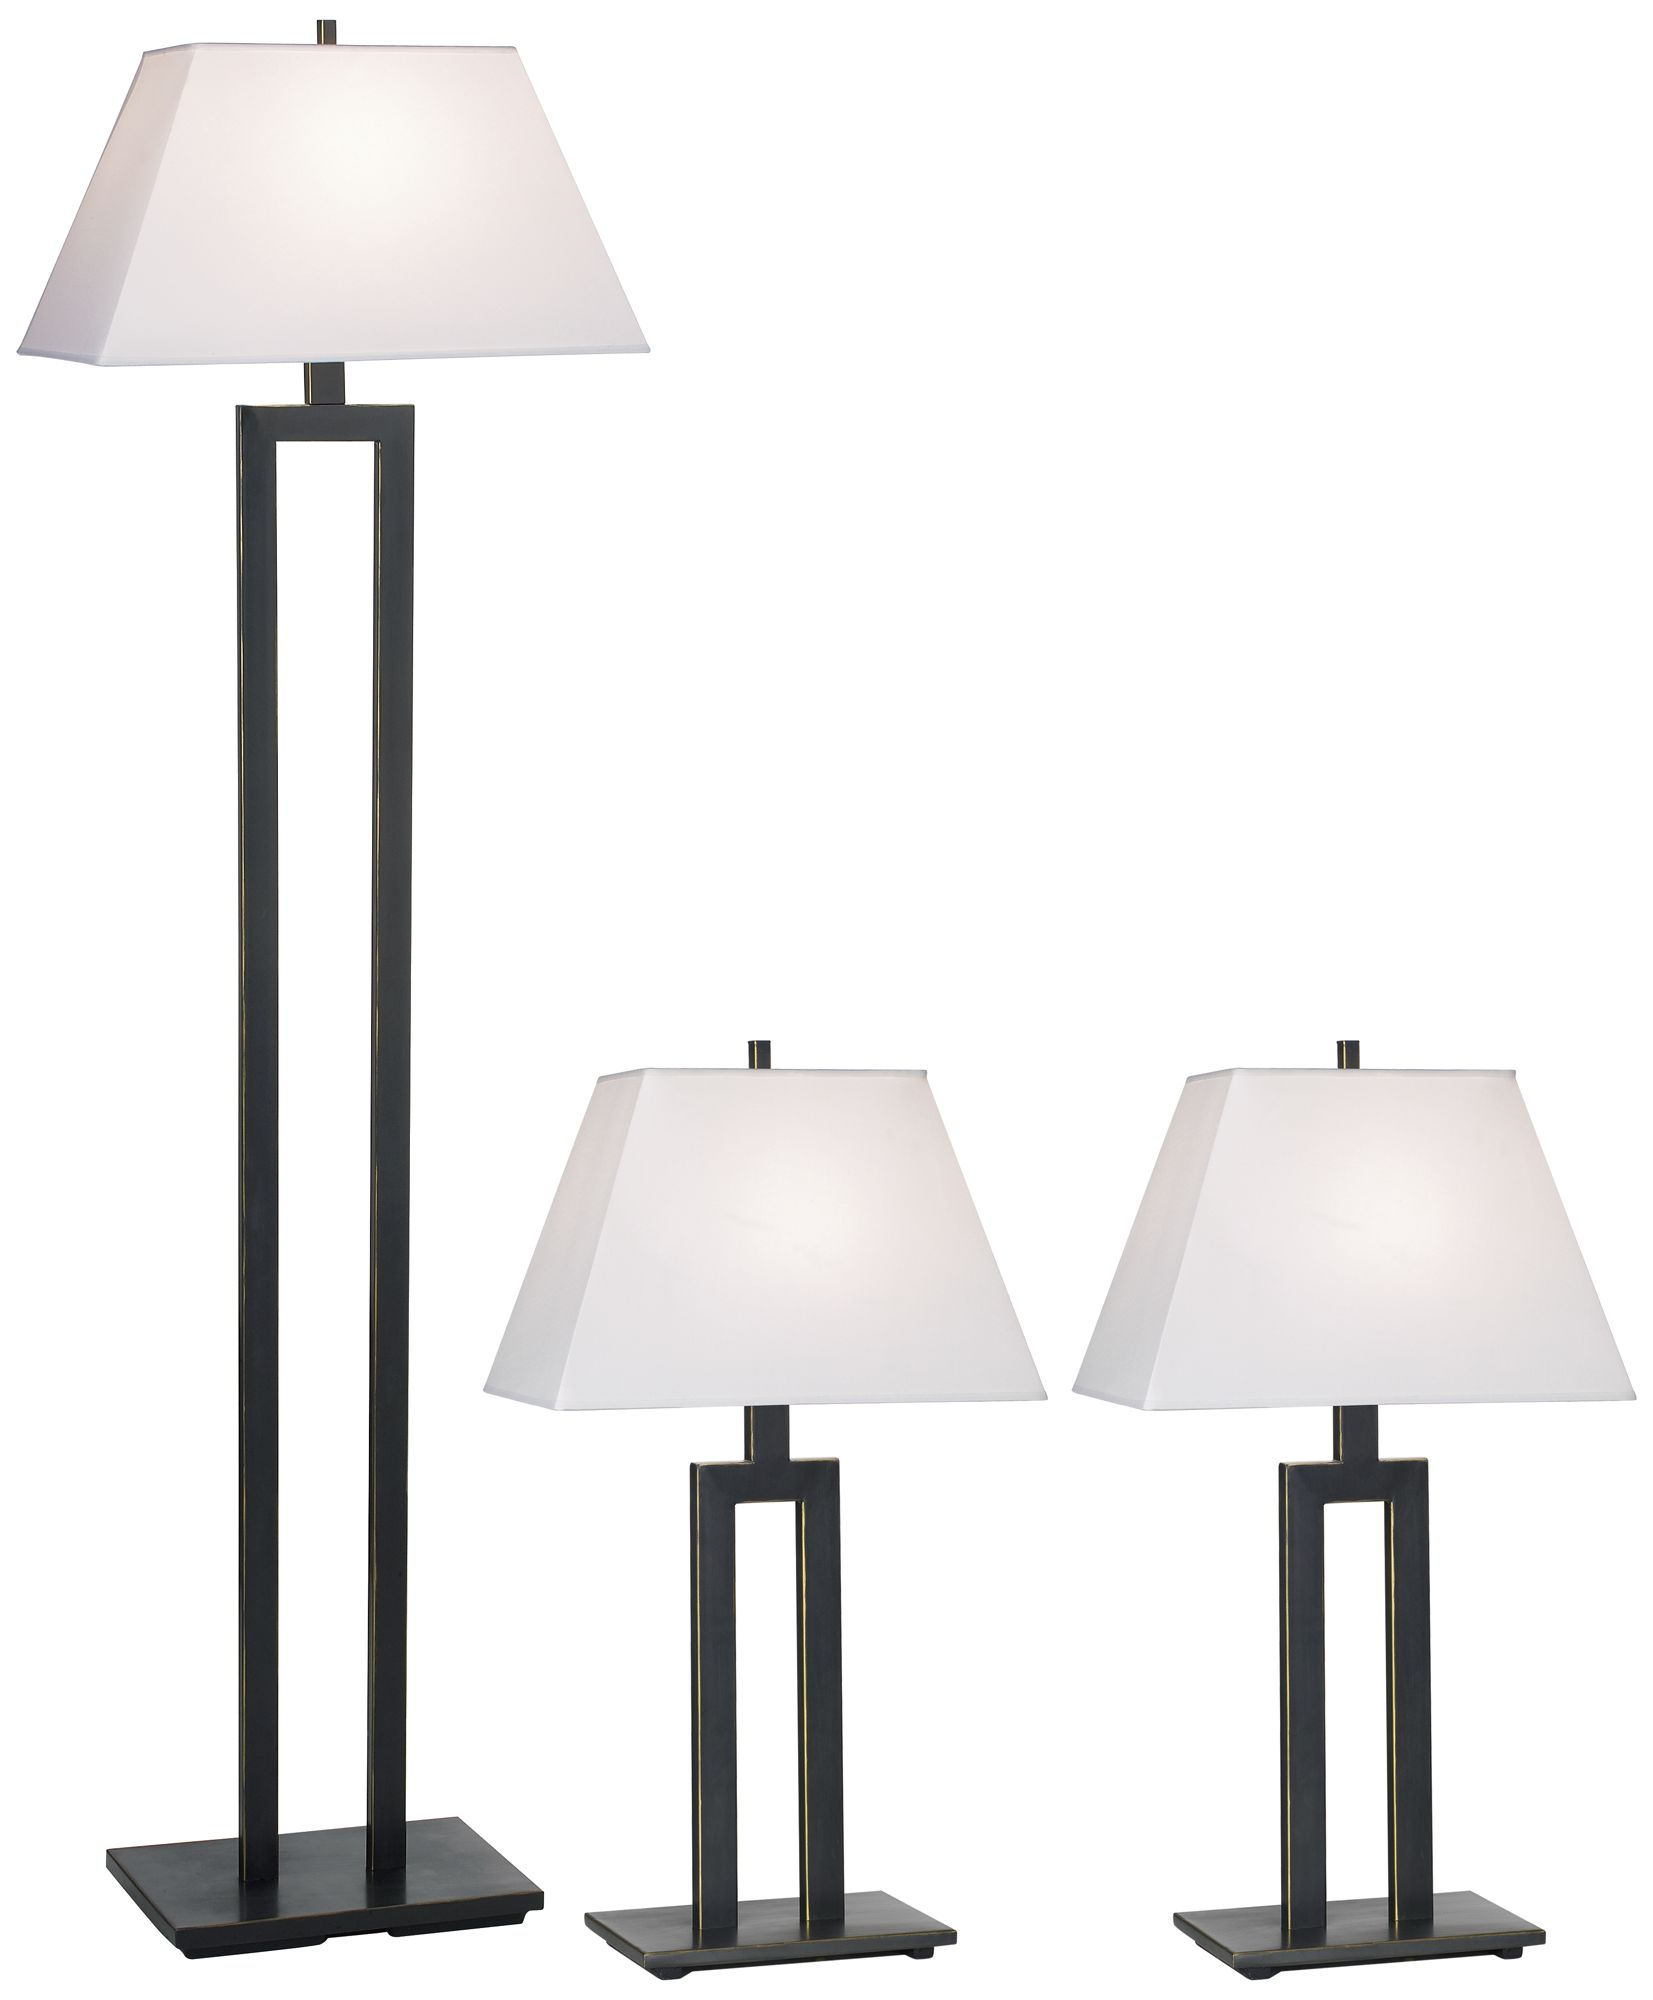 Contemporary Trio Table and Floor L& Set of 3  sc 1 st  L&s Plus : floor and table lamp set - Pezcame.Com